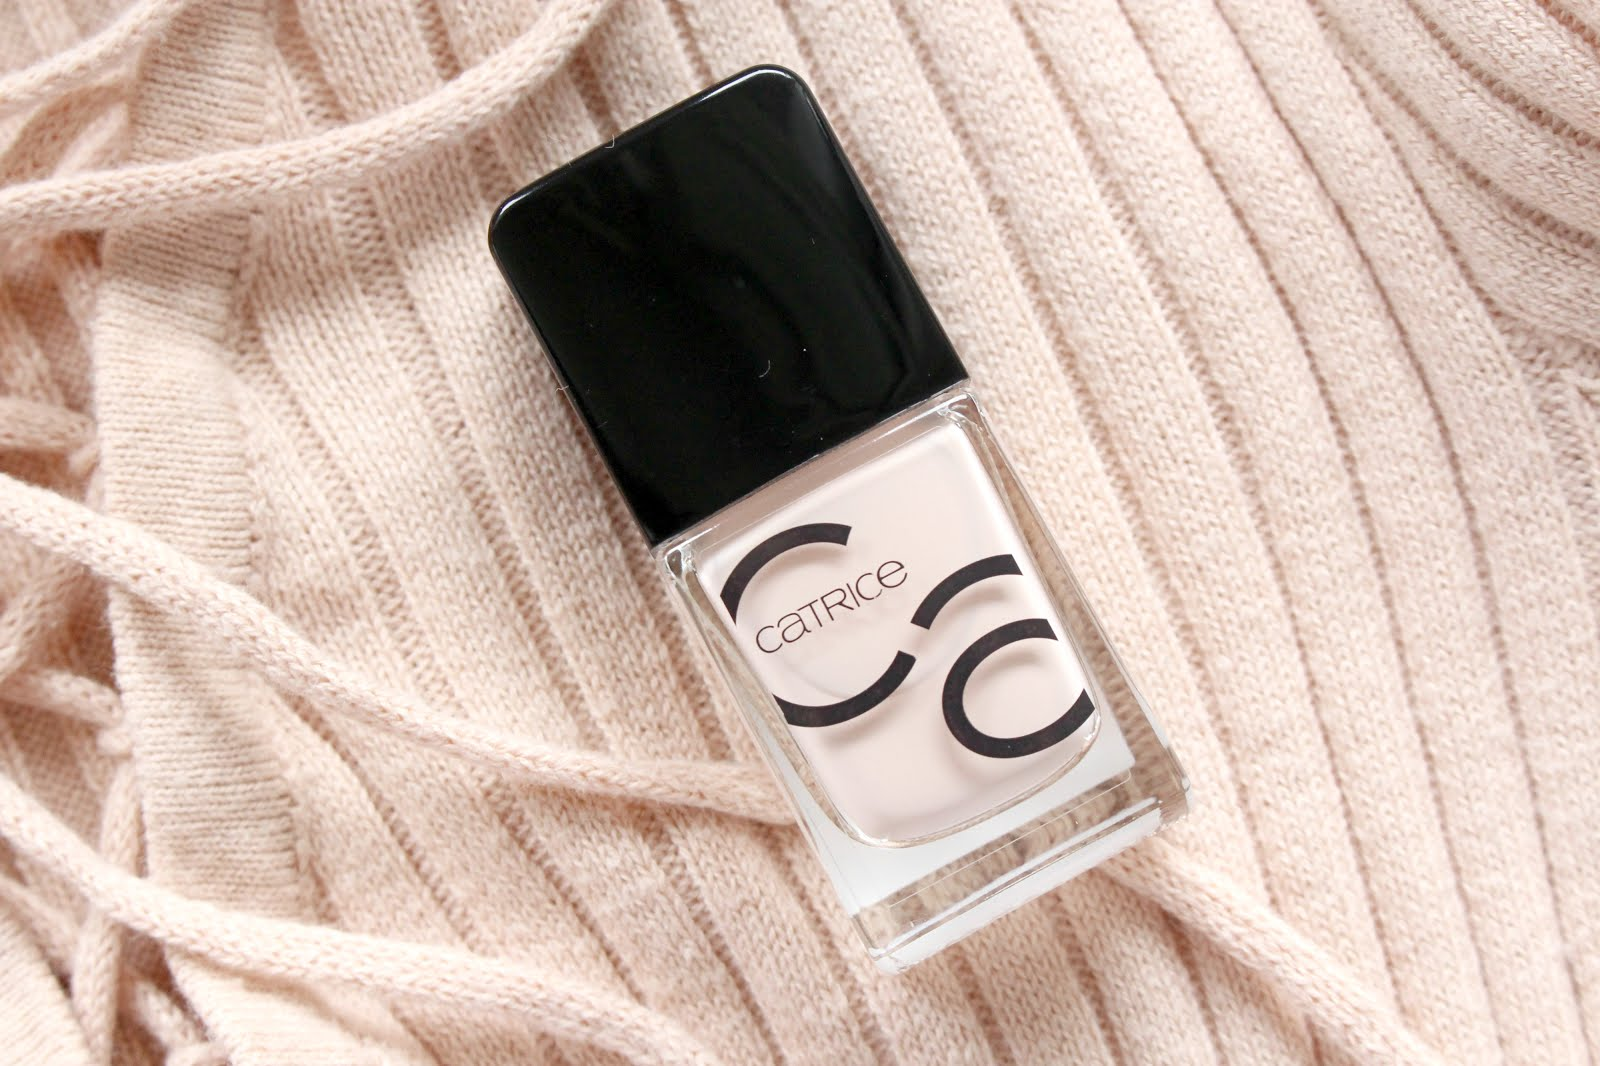 catrice, catrice nagellack, catrice nail polish, catrice iconails,  catrice iconails review, catrice neue nagellacke, catrice new nail polishes, catrice blogger, catrice honeymoon is coming soon, nelly ray, nelly ray blog, beauty blog, beautyblog, beauty blogger, beautyblogger